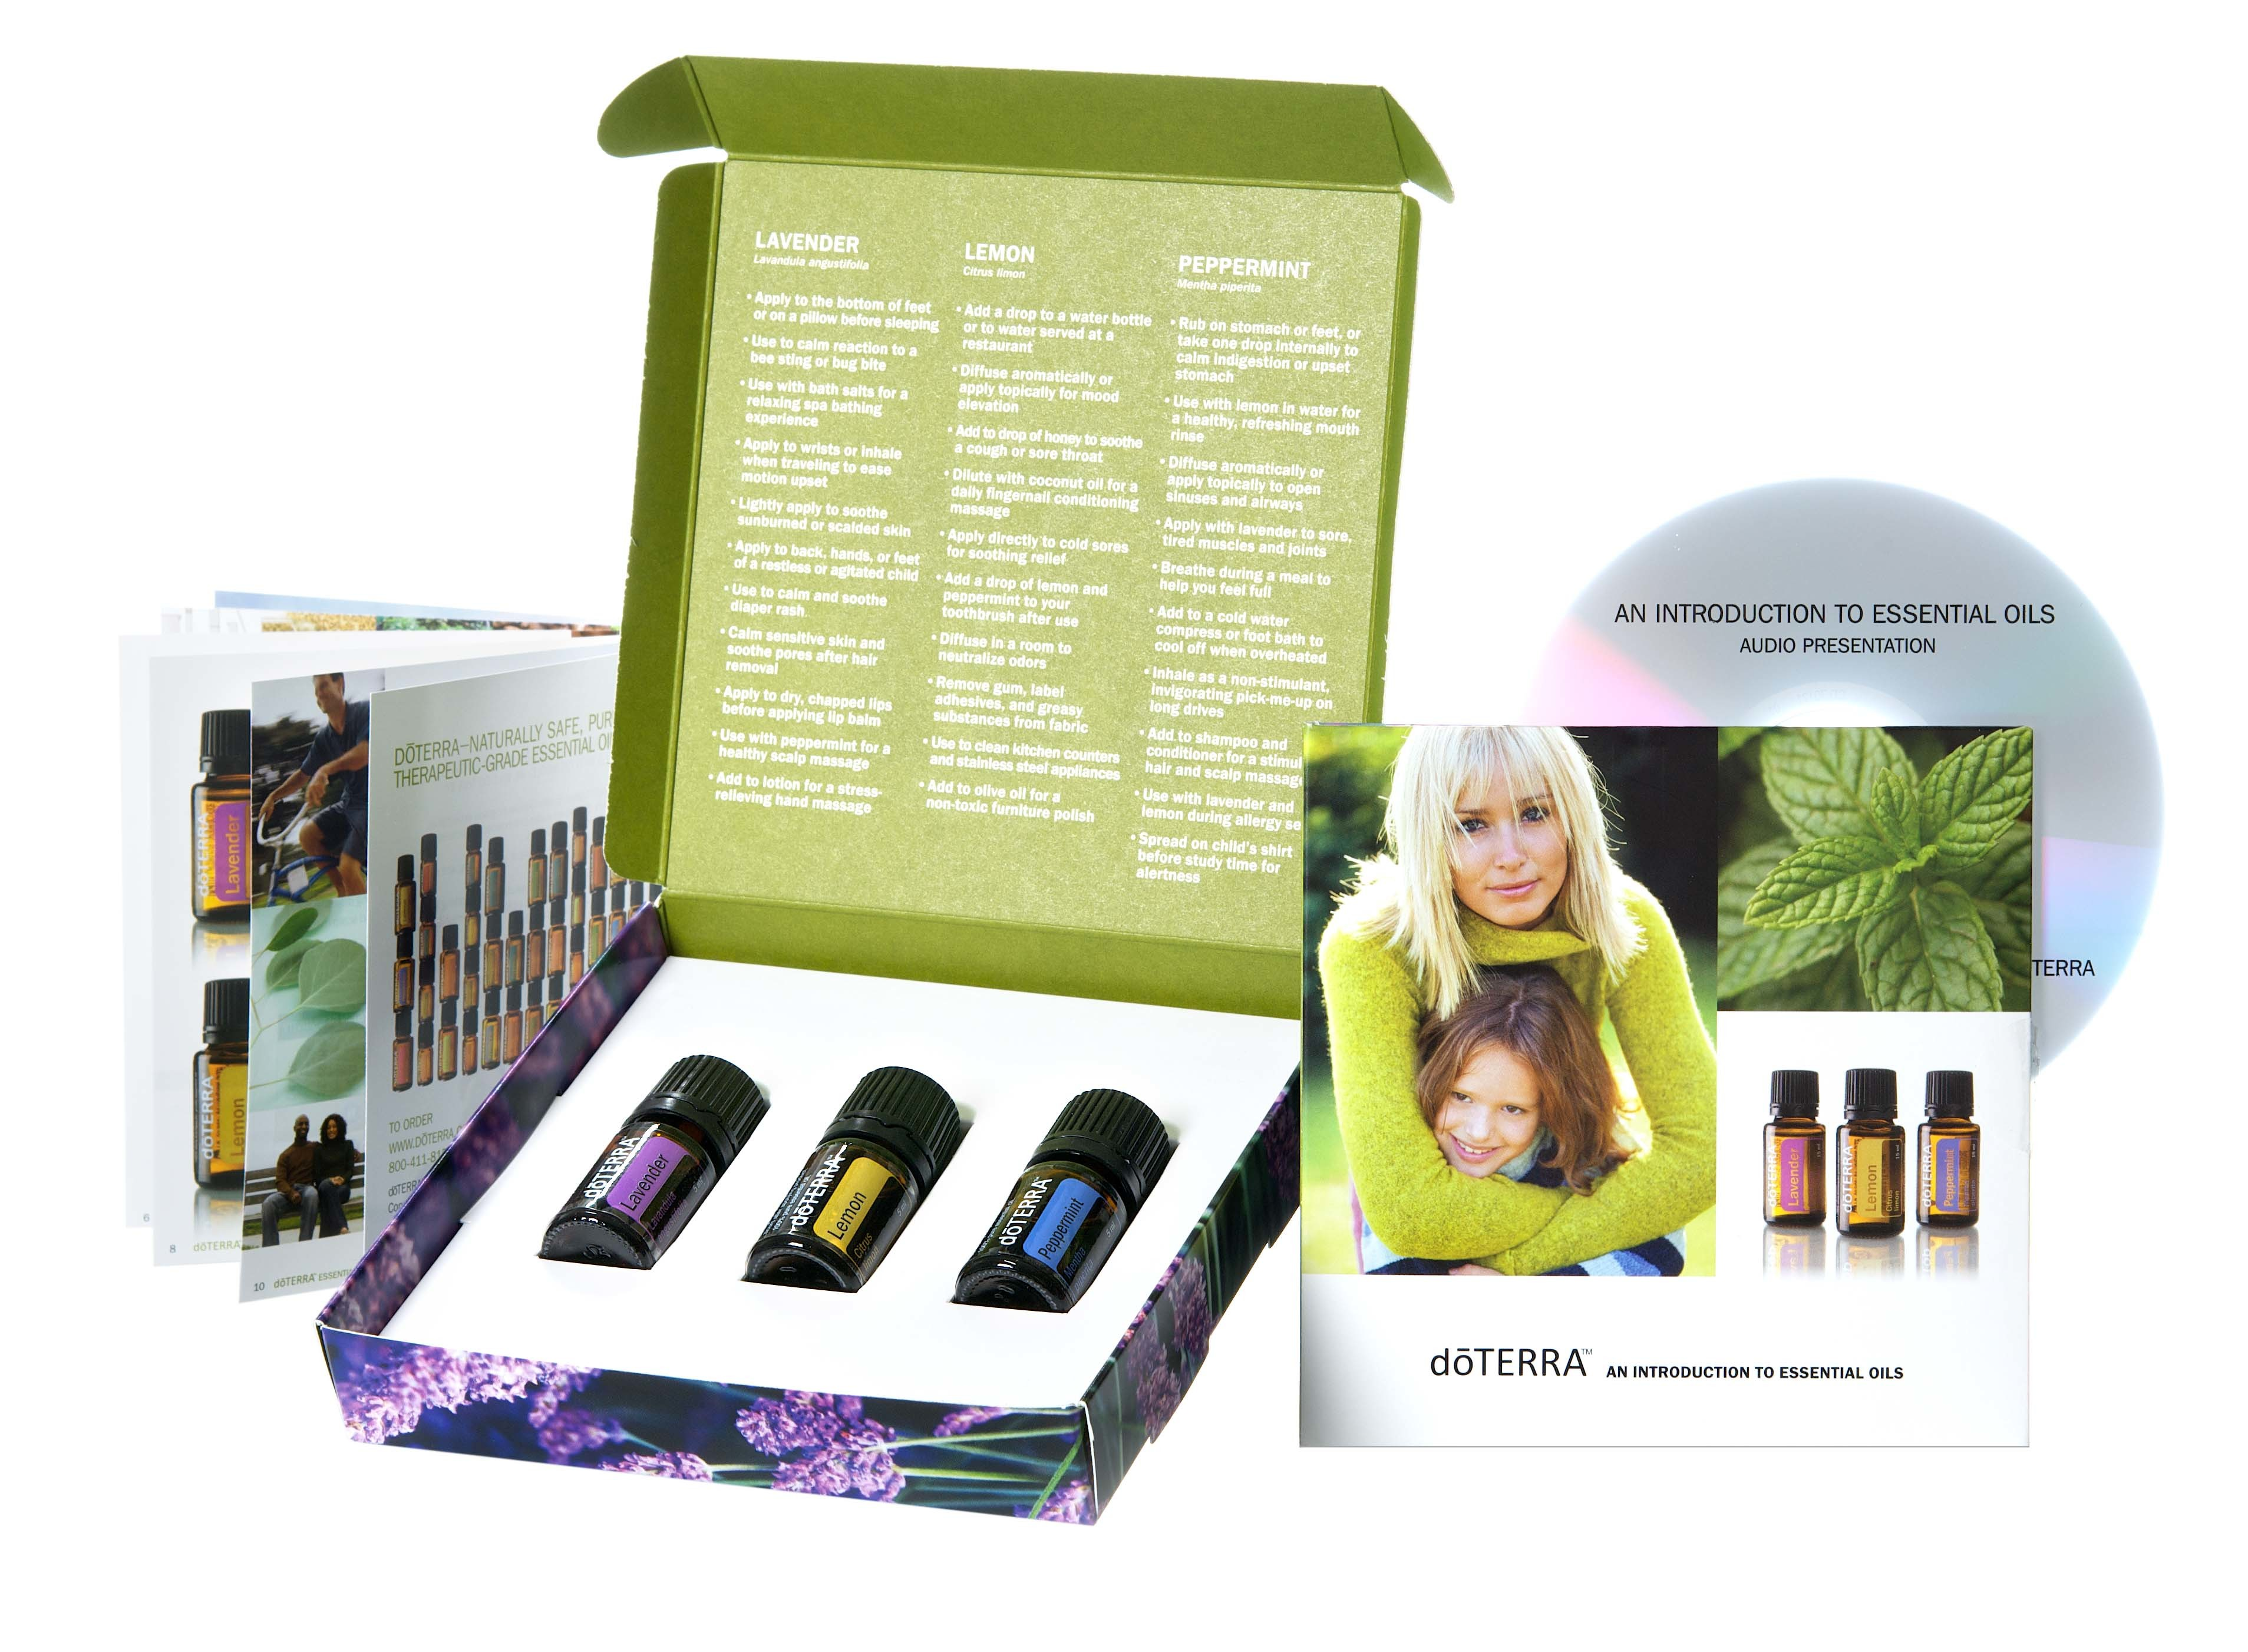 Introduction to Essential Oils Kit - doTERRA 0778